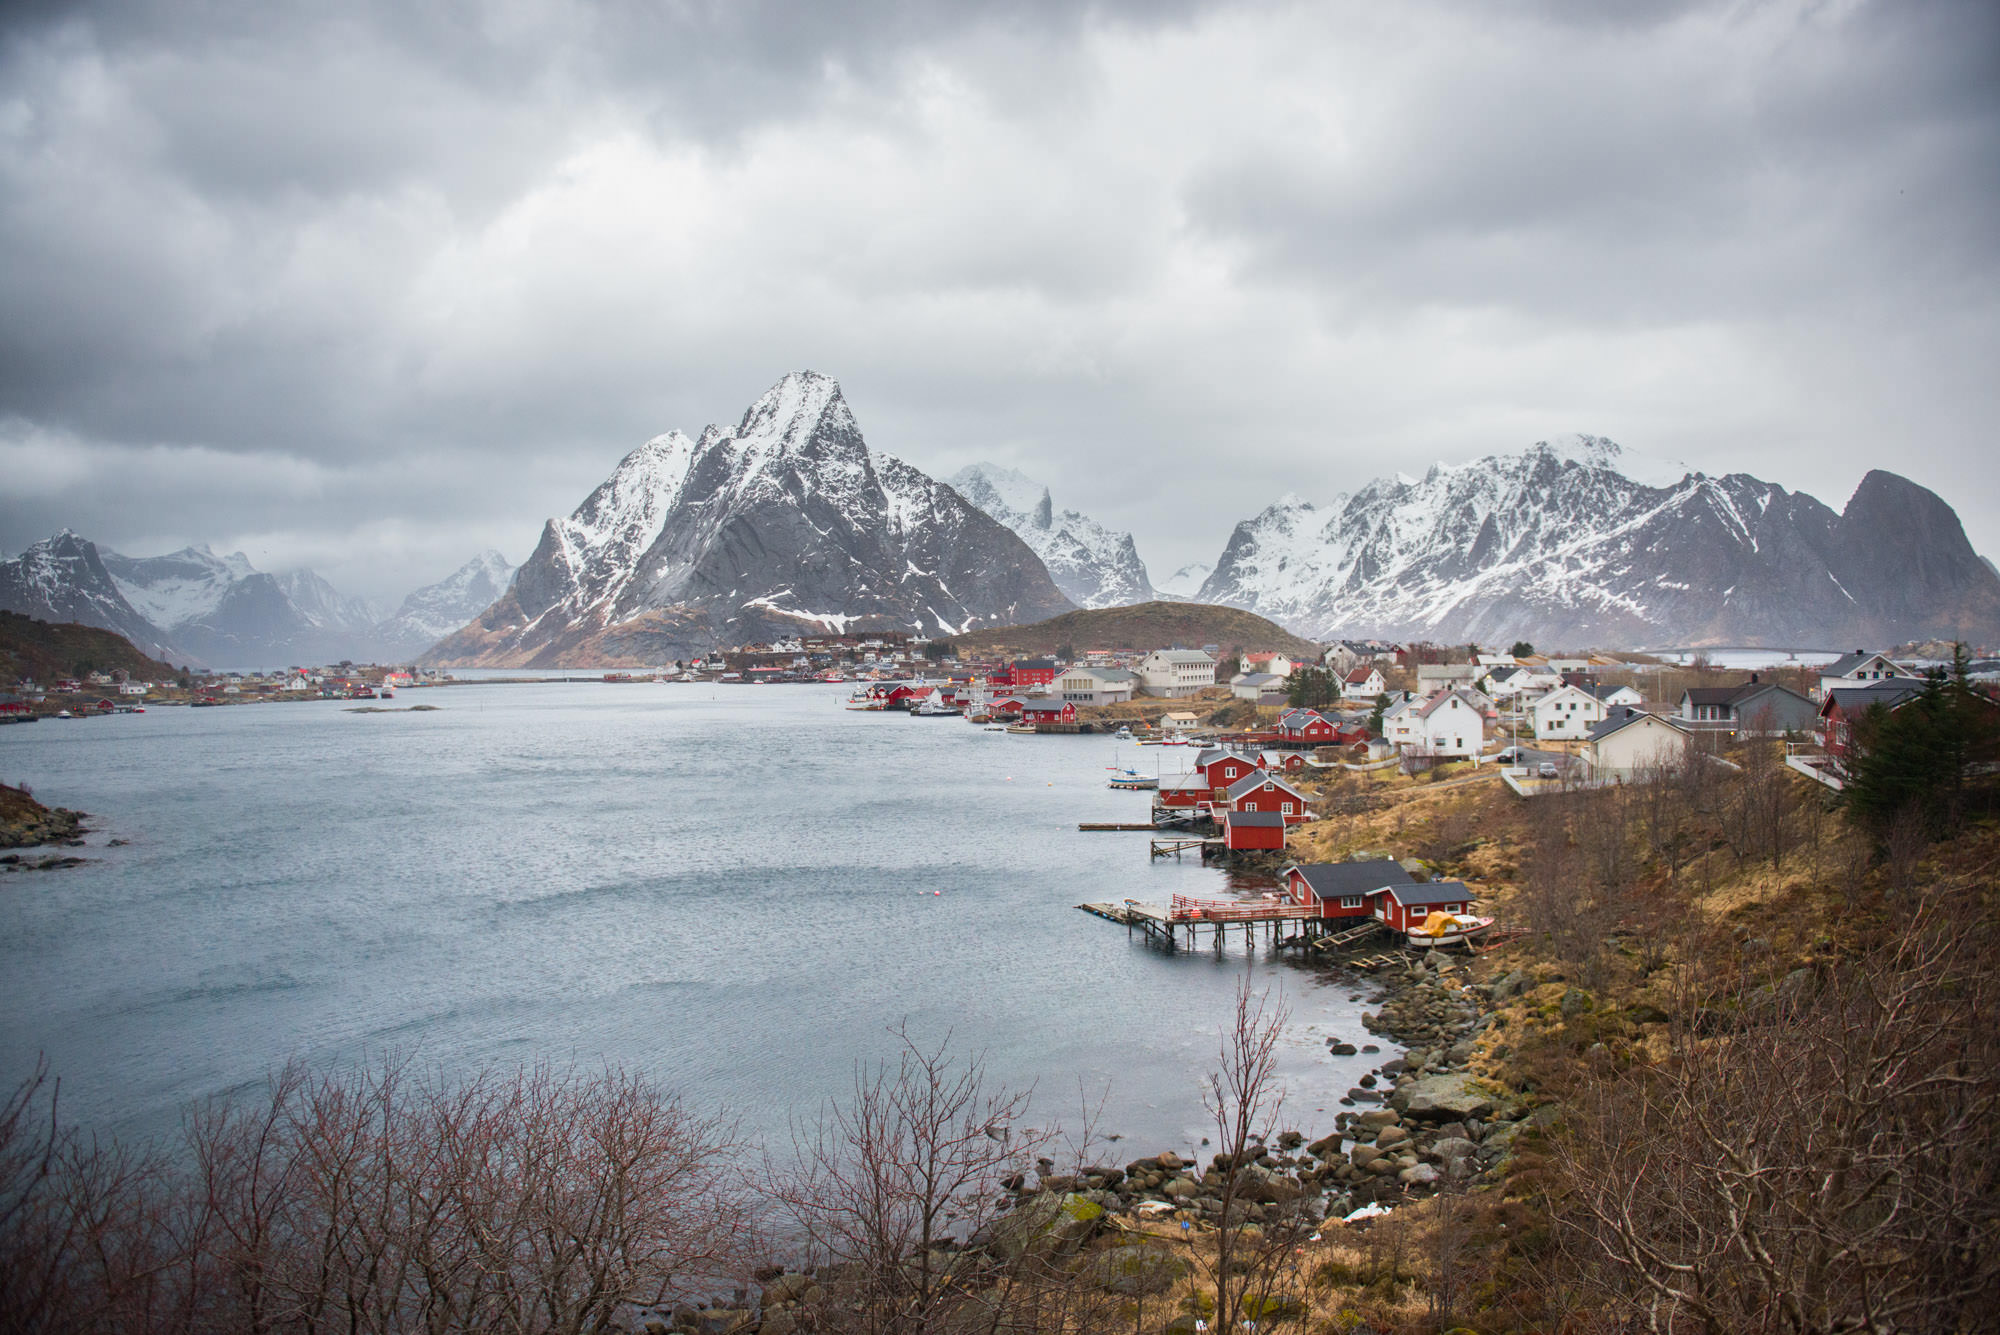 A fishing village with small red houses on the coast in Norway